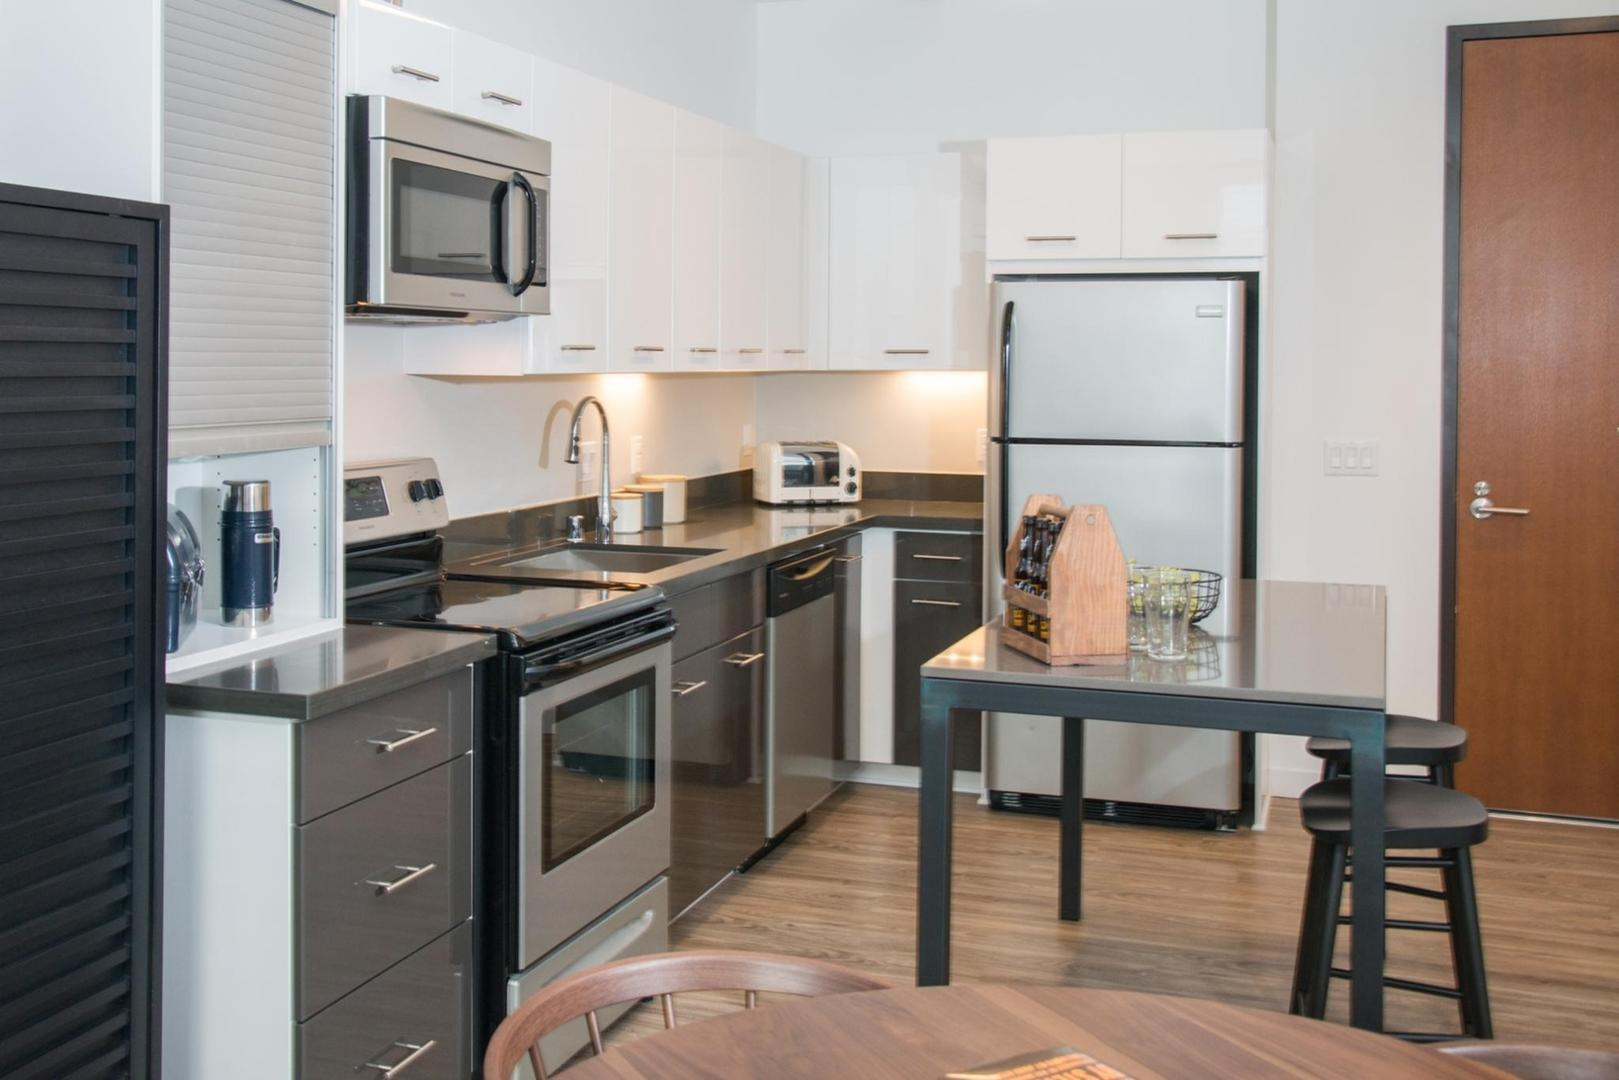 688 13th St #434 - 2659USD / month